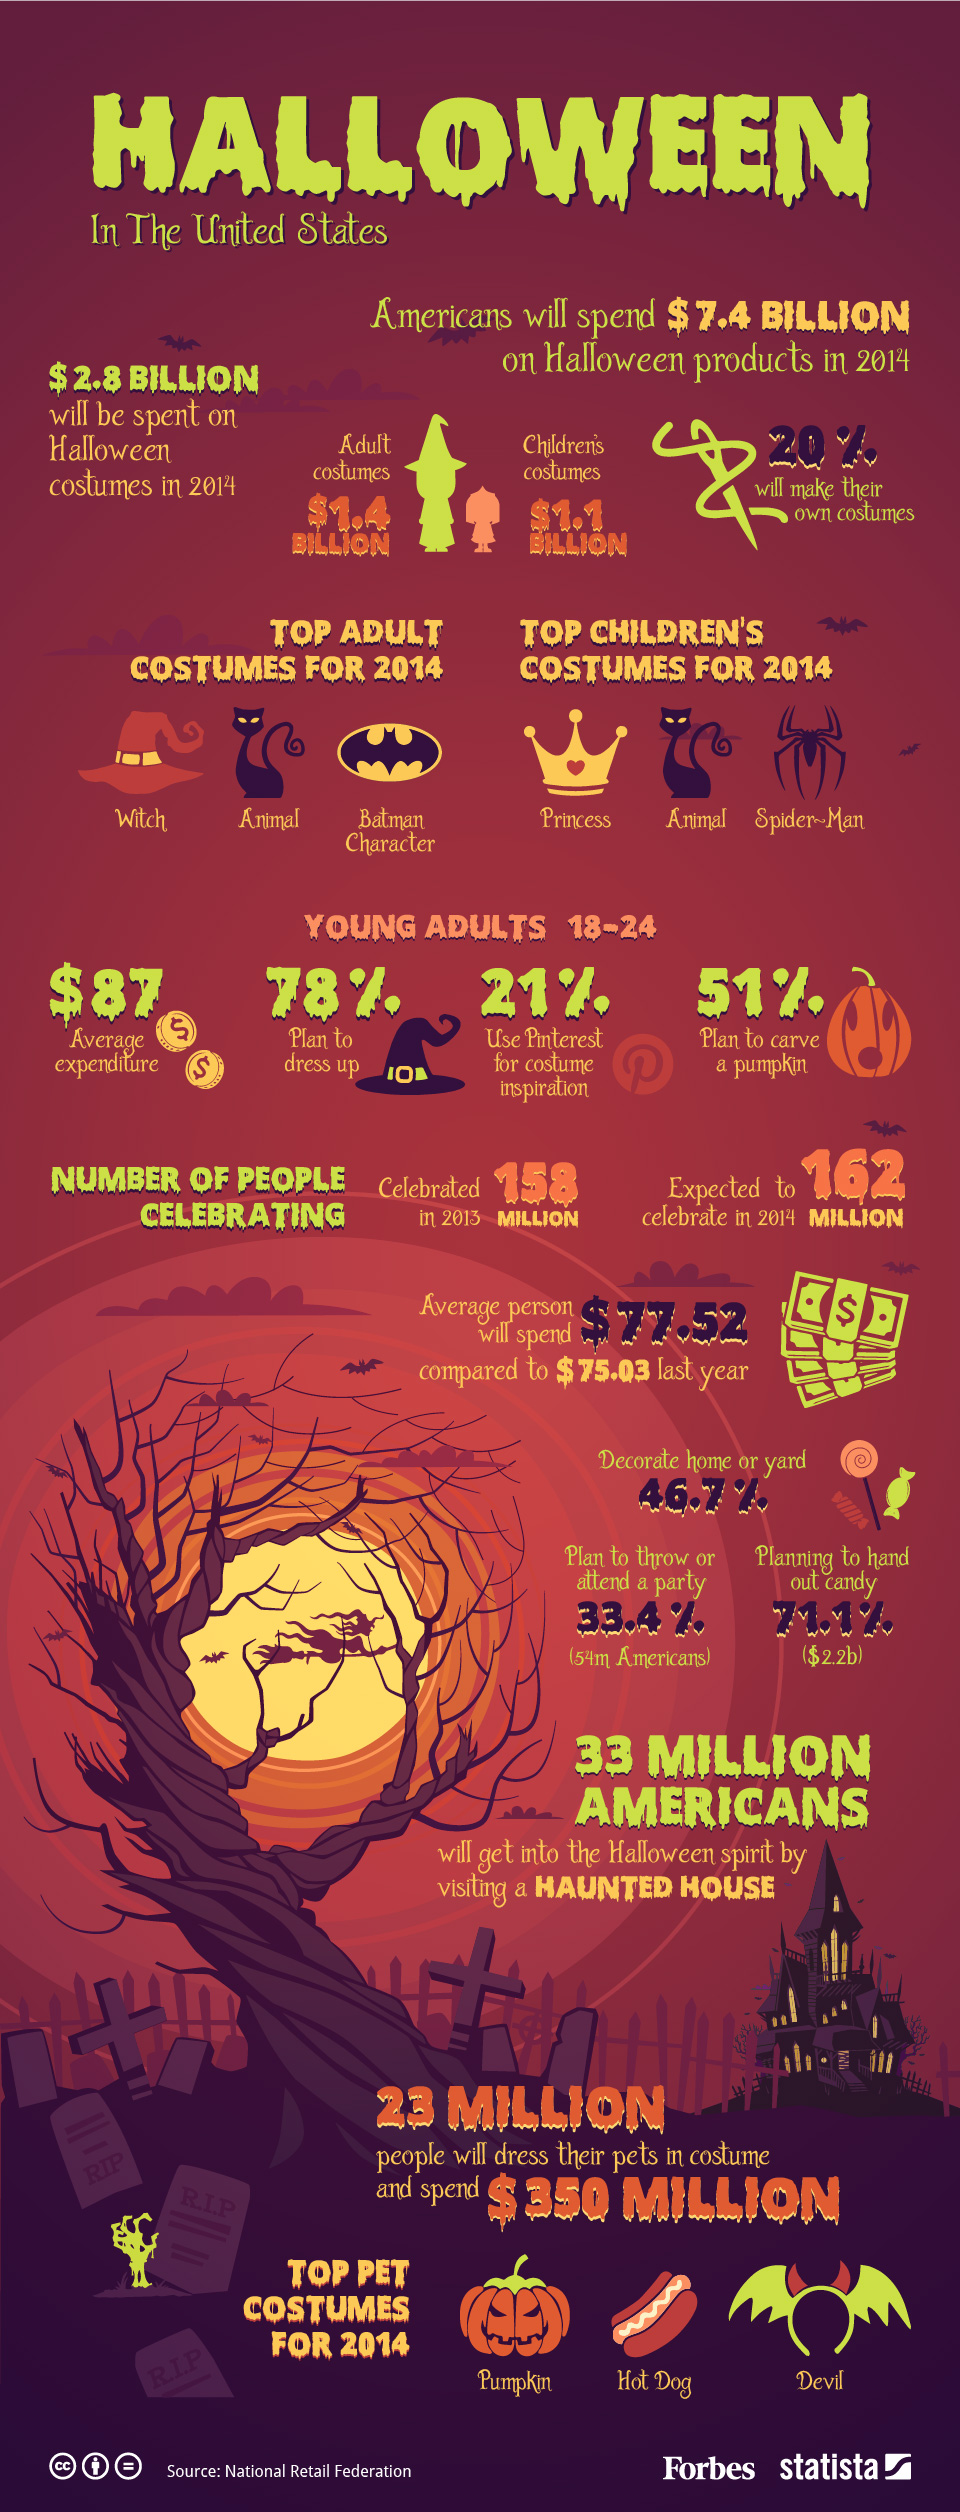 Infographic: Halloween in the United States by the Numbers | Statista